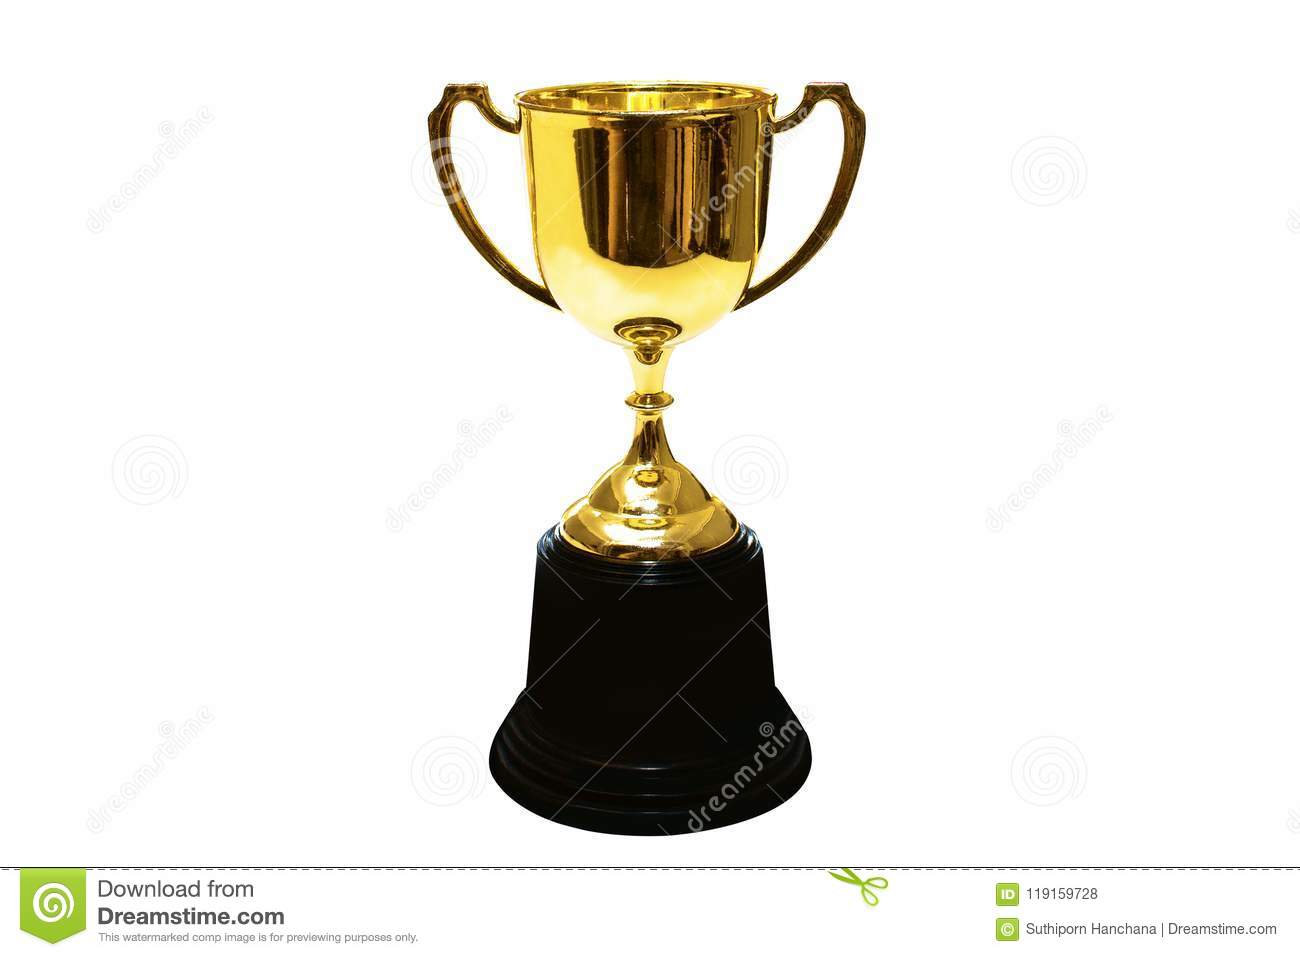 Golden cup isolate on background.Copy space.Clipping path.